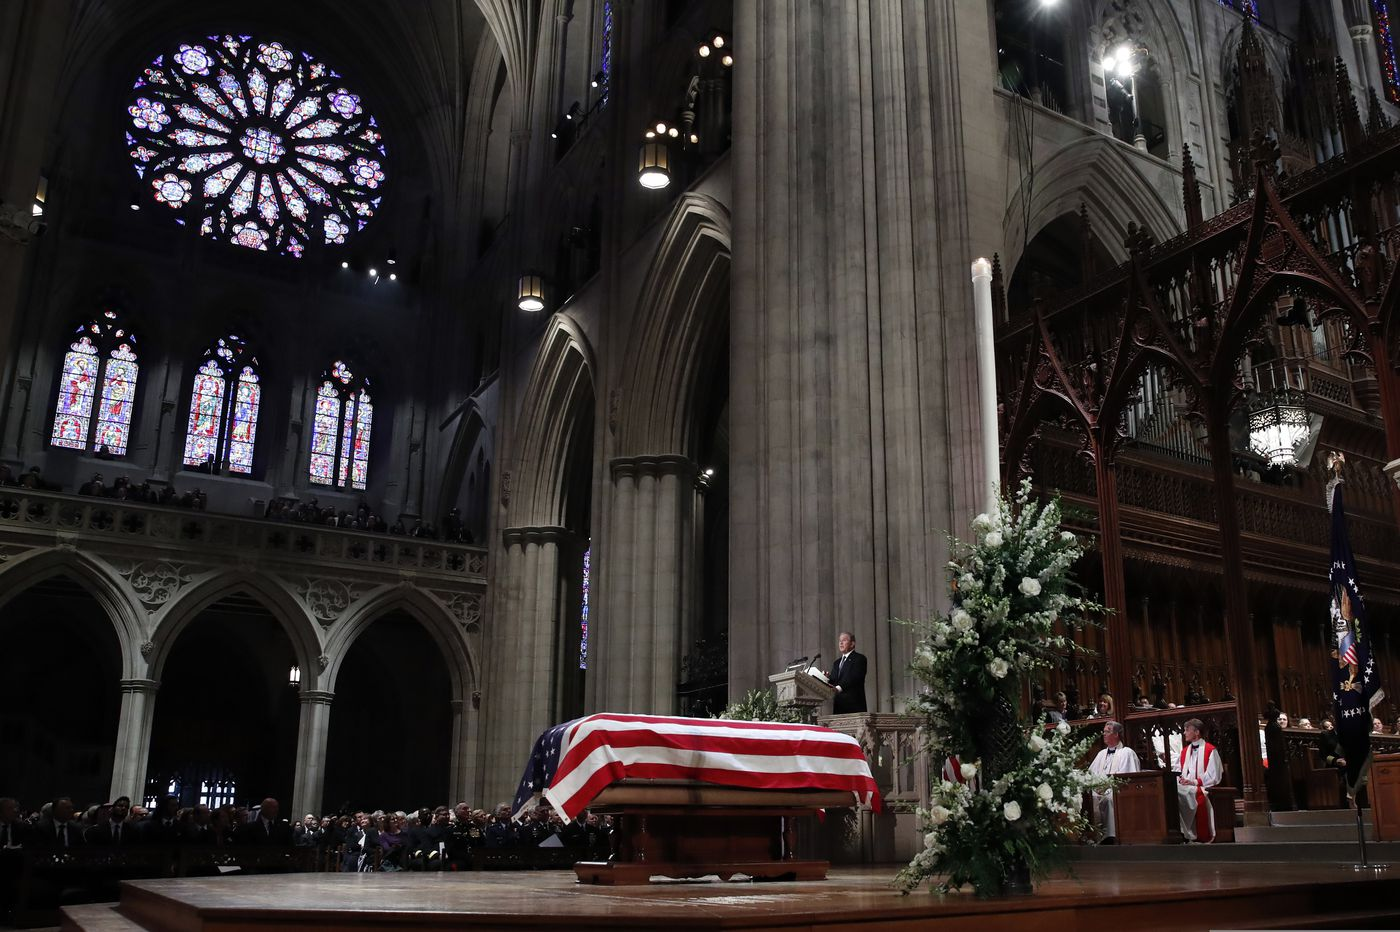 With tears, laughter and prayer, nation bids farewell to George H.W. Bush